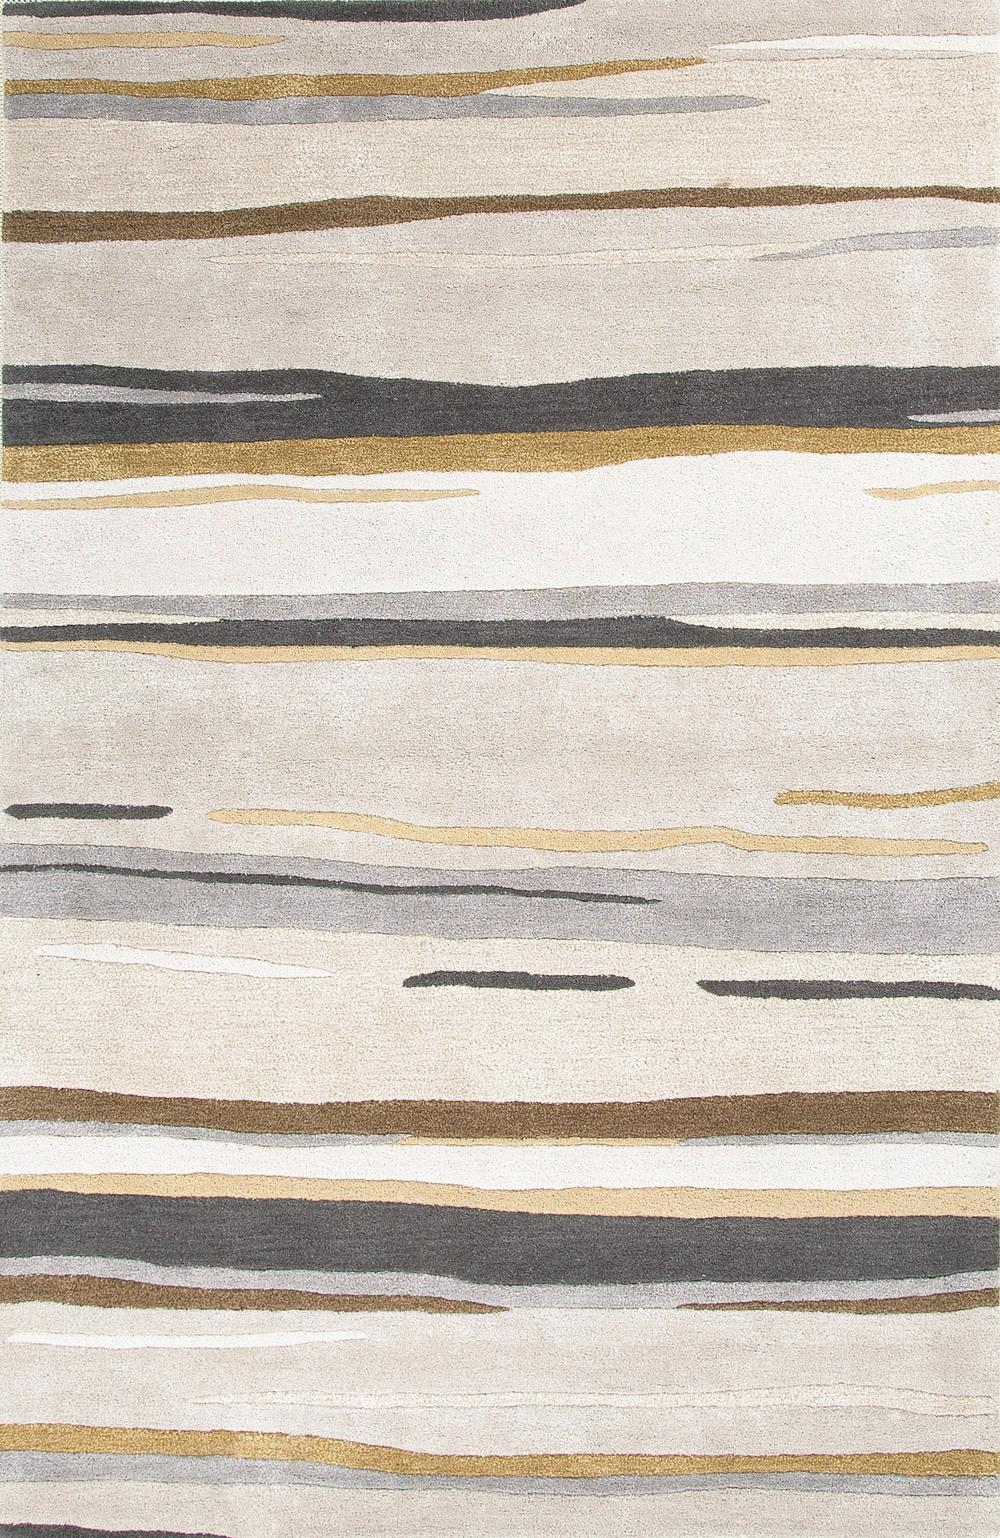 Area Rug Jaipur Baroque Bernini Gray Brown Bq15 Tap To Expand